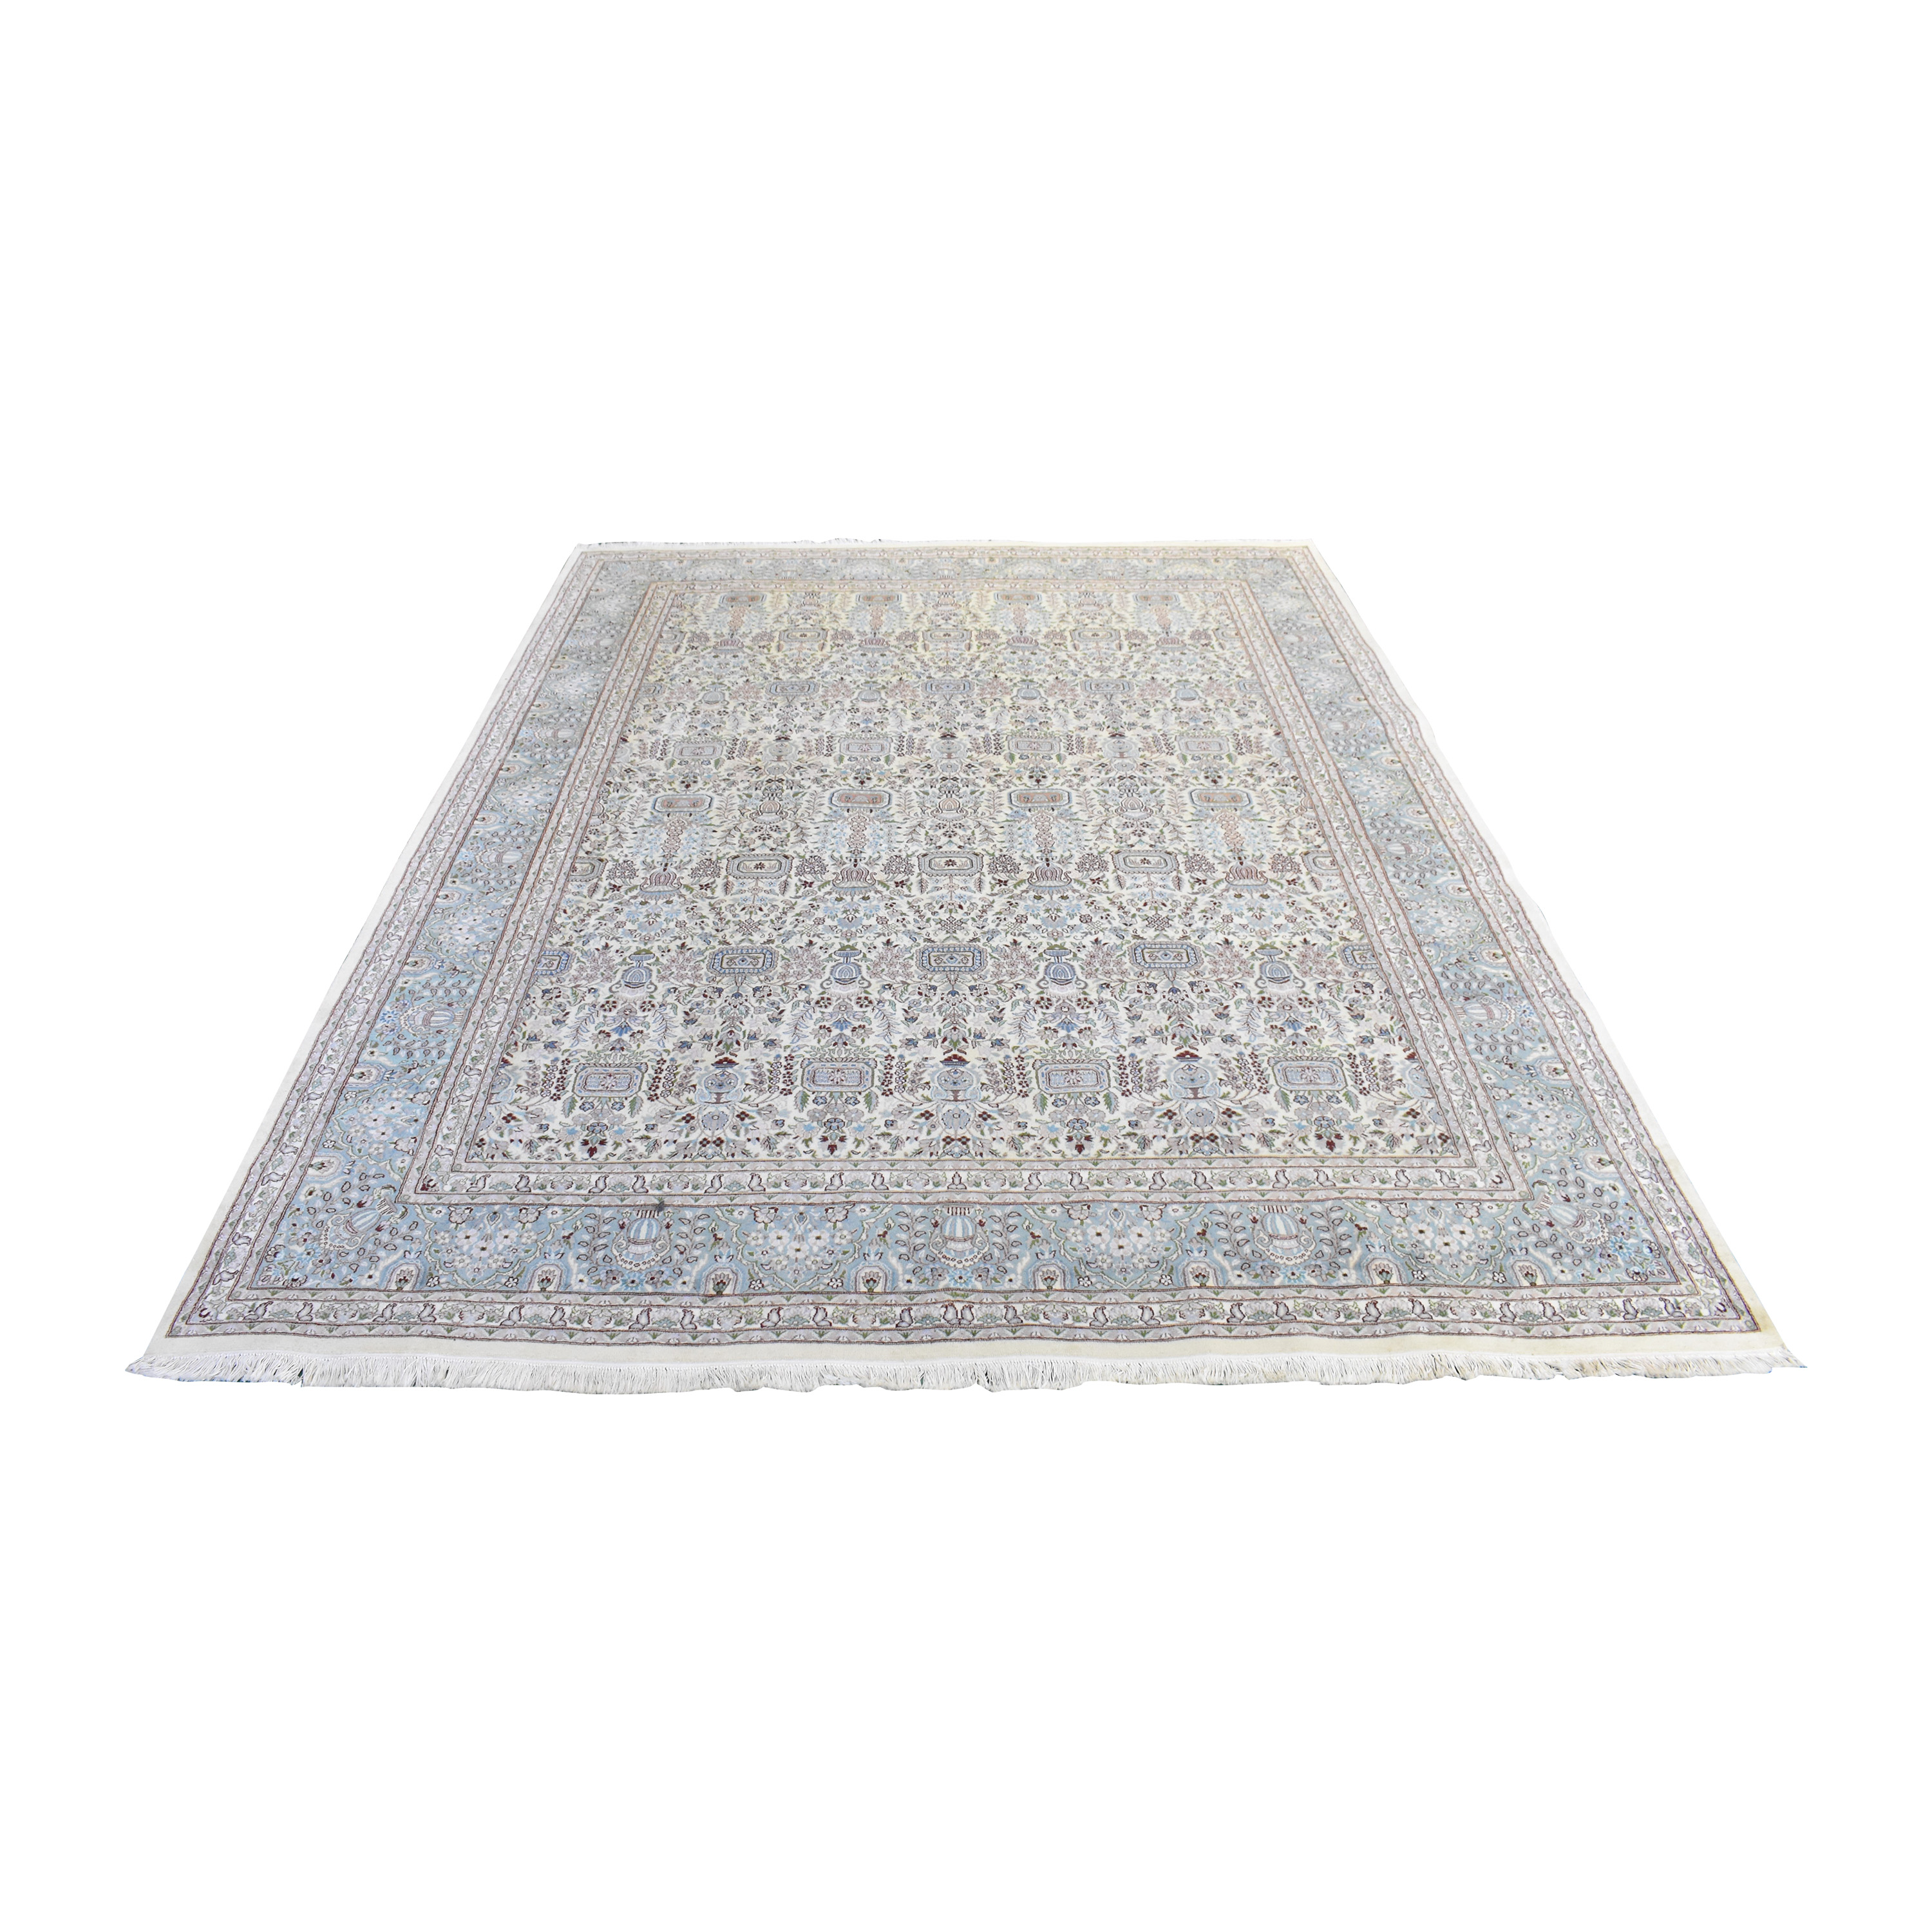 Bloomingdale's Oriental Rug with Fringe sale